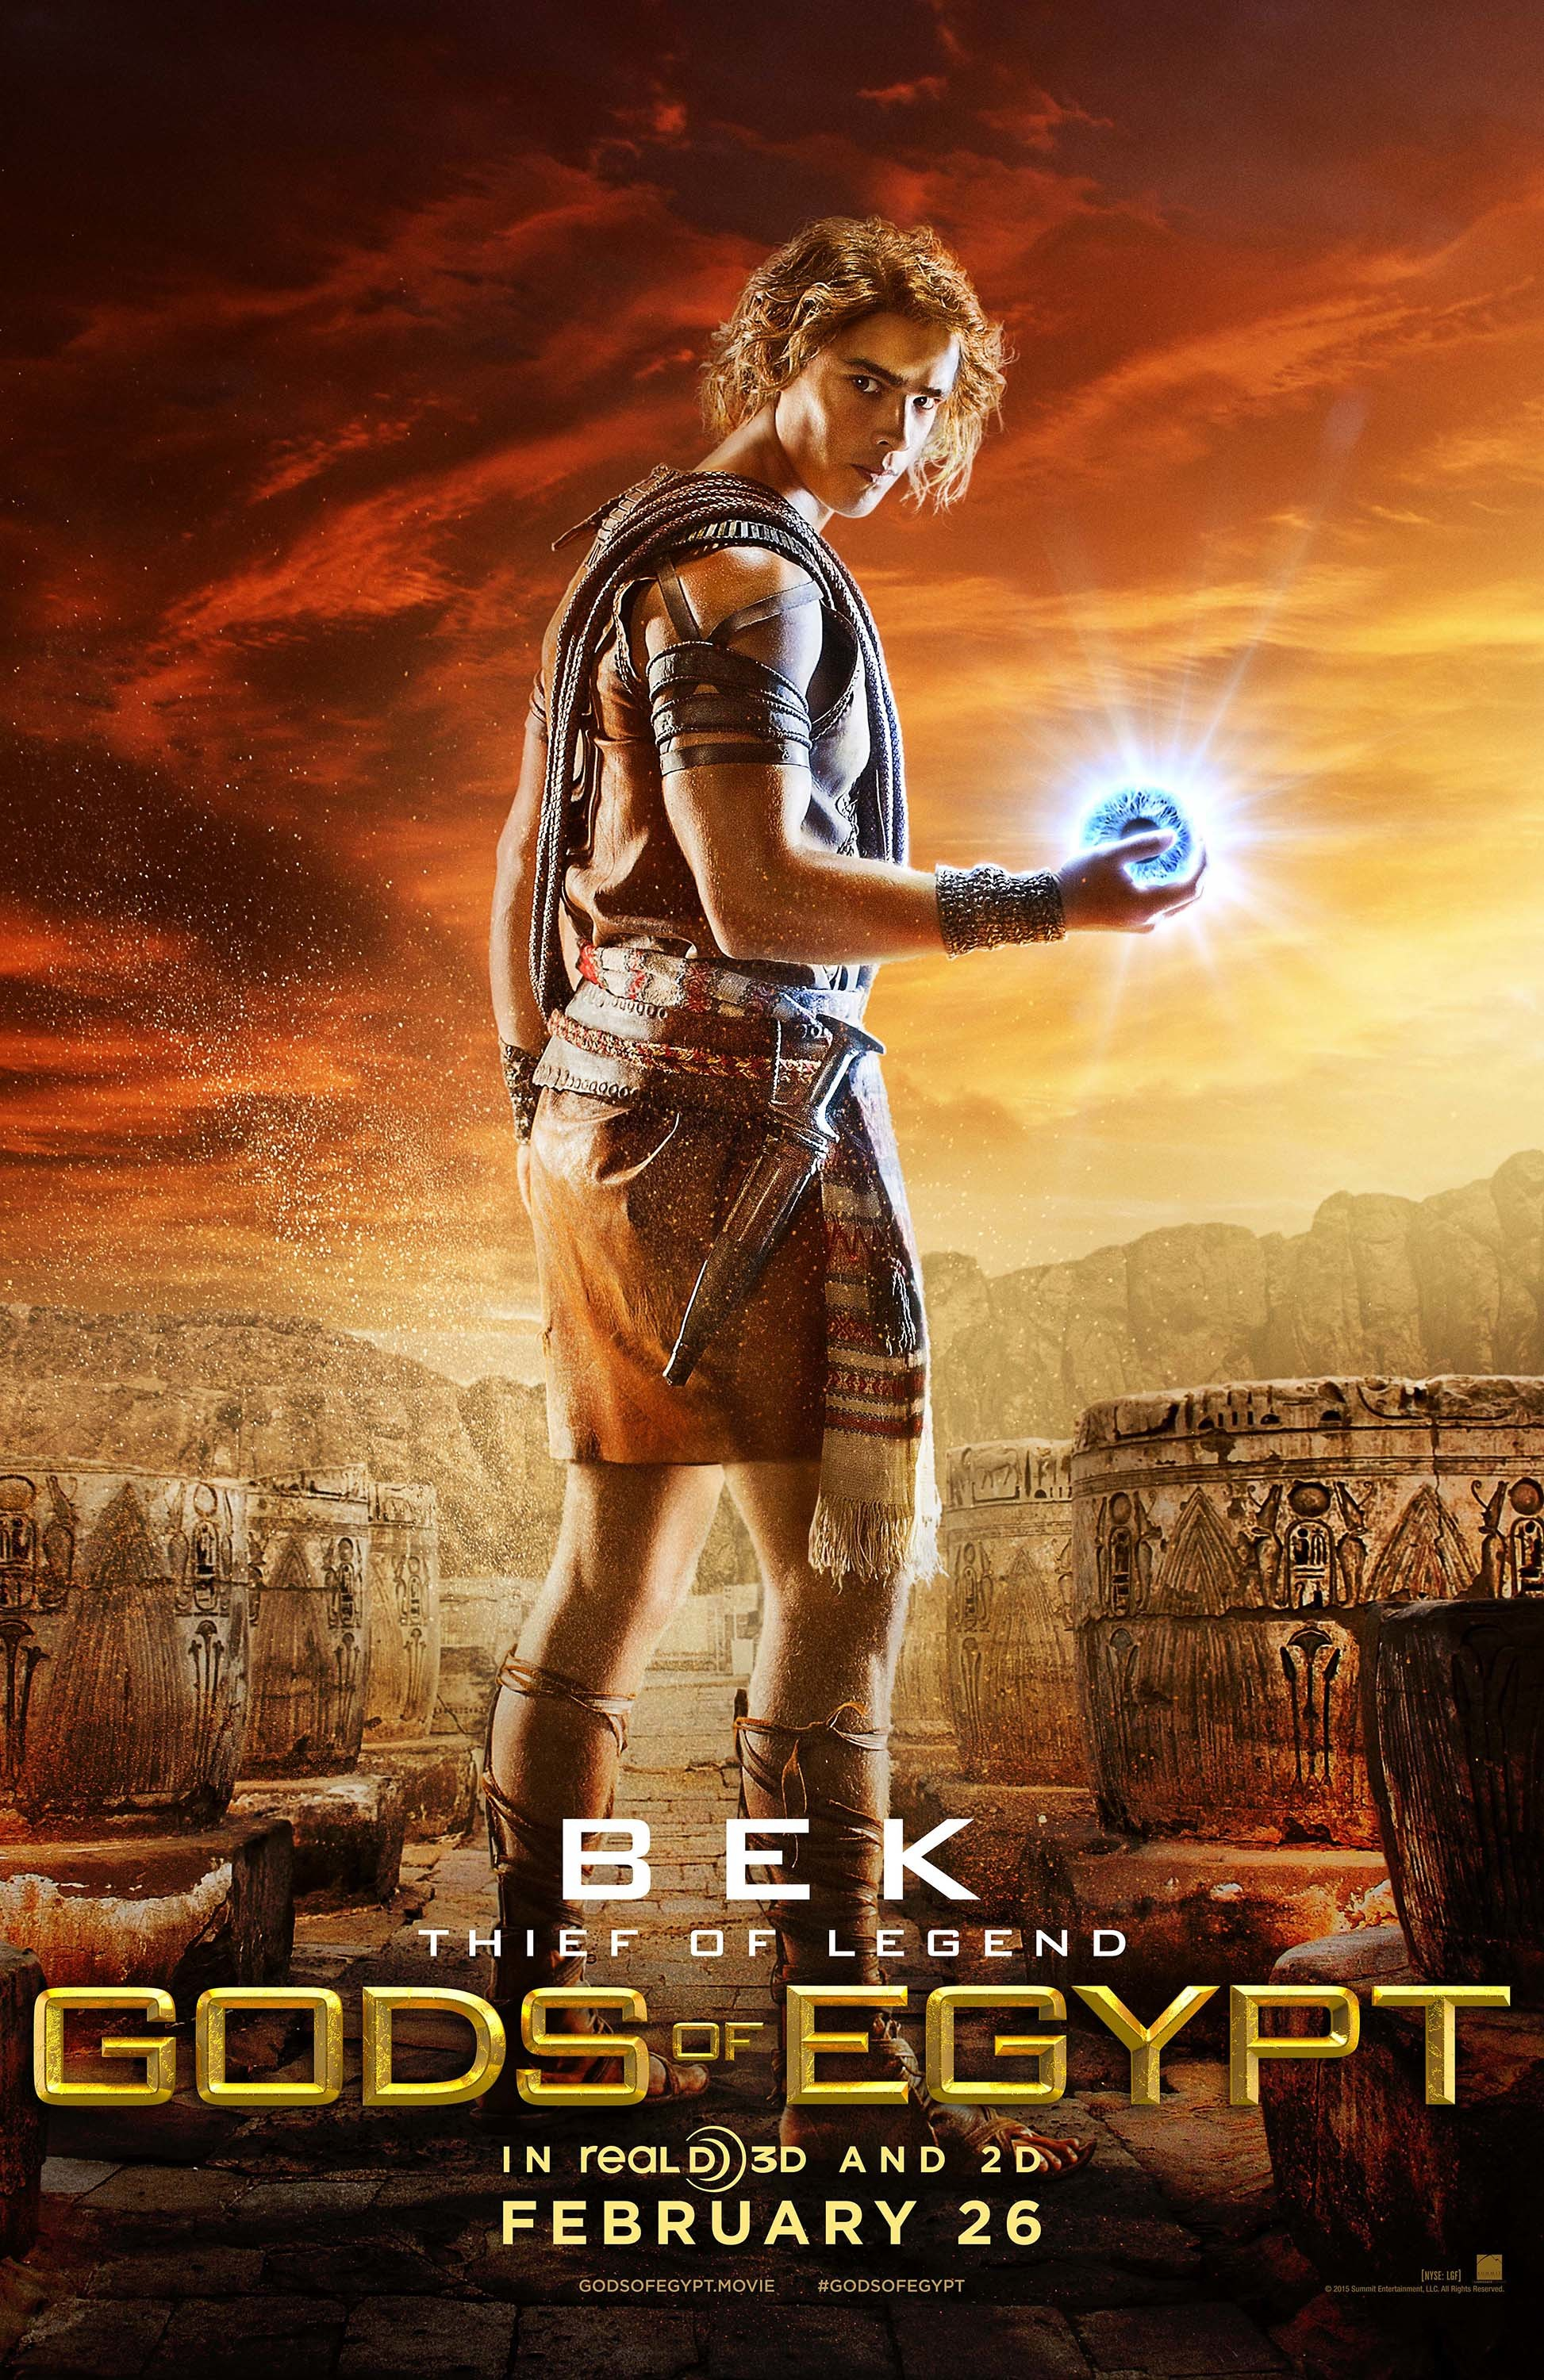 Gods of Egypt images Bek Poster HD wallpaper and background photos